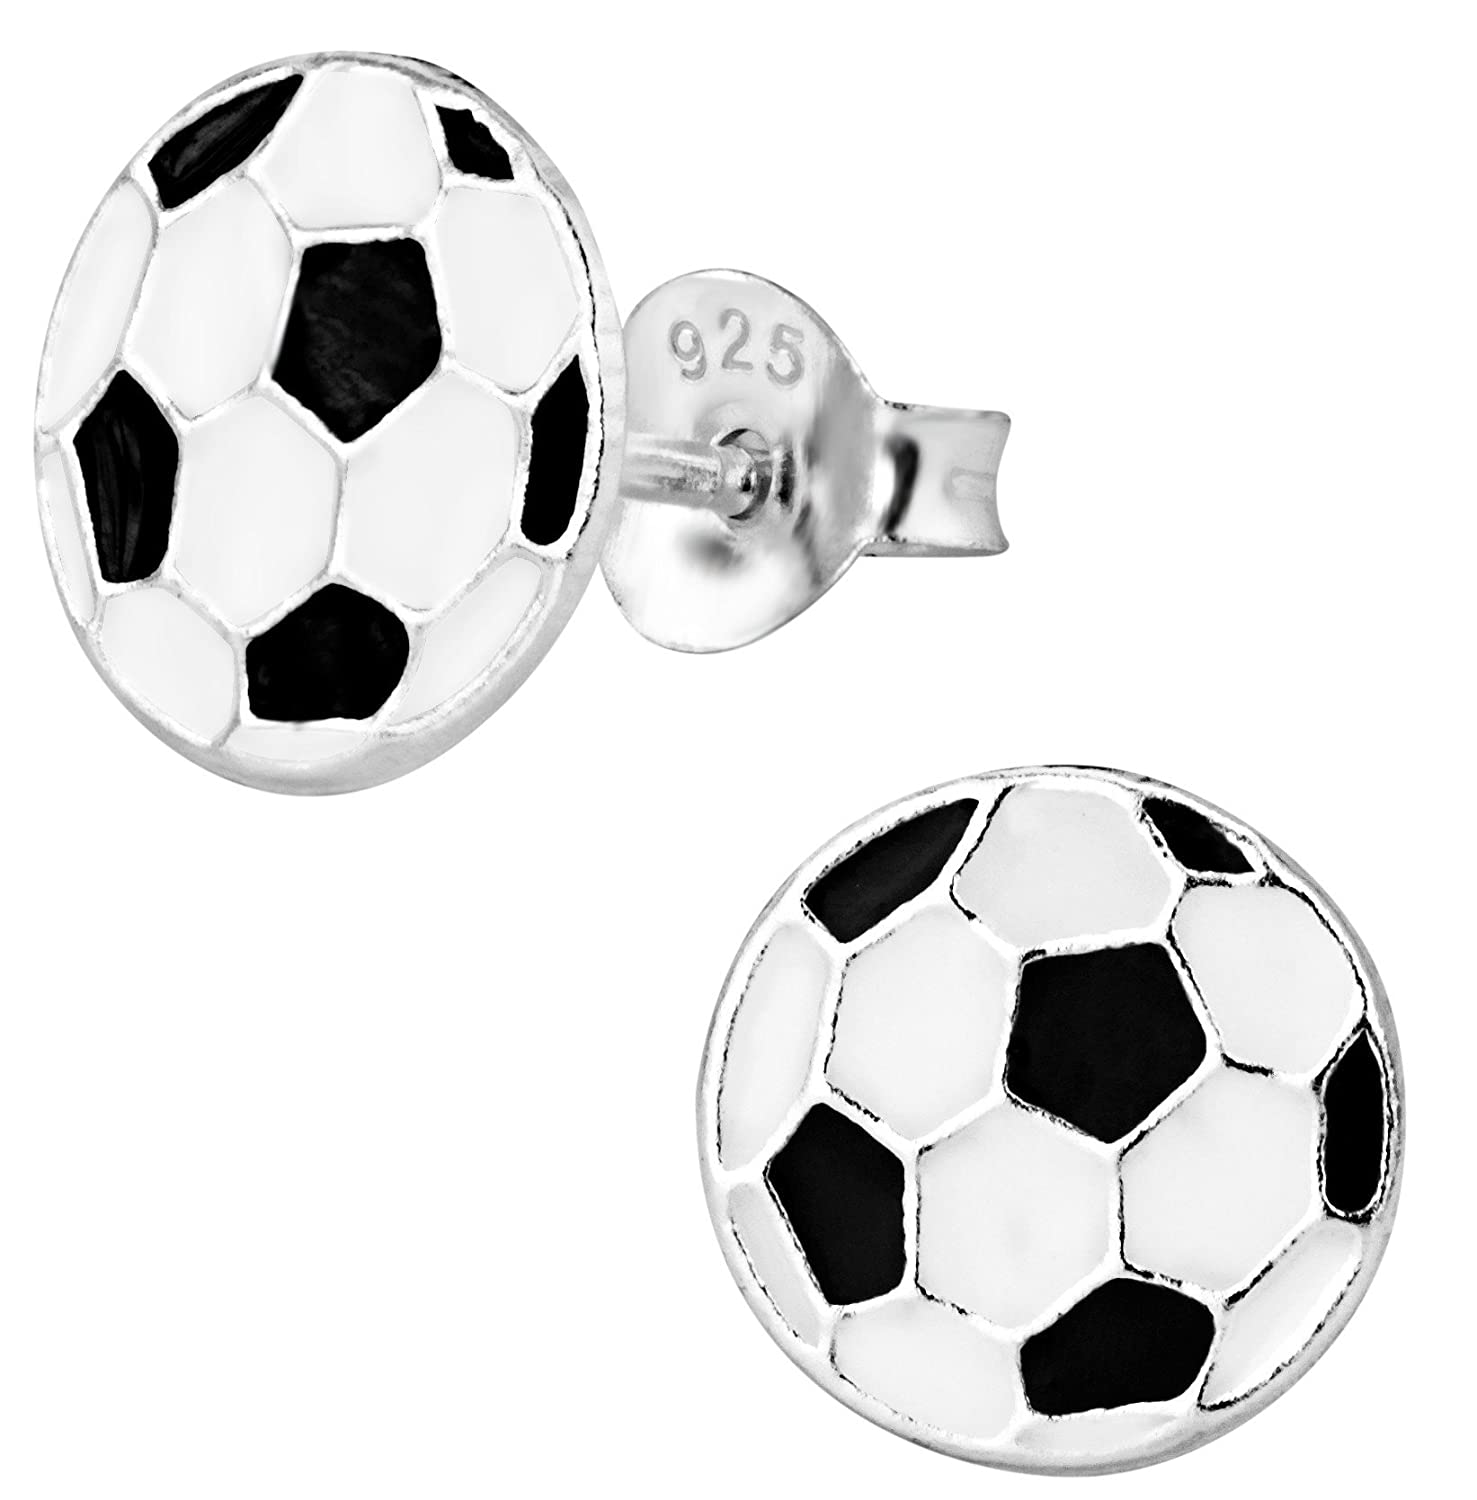 4b66848c1 Amazon.com: Hypoallergenic Sterling Silver Soccer Ball Stud Earrings for  Kids (Nickel Free): Jewelry